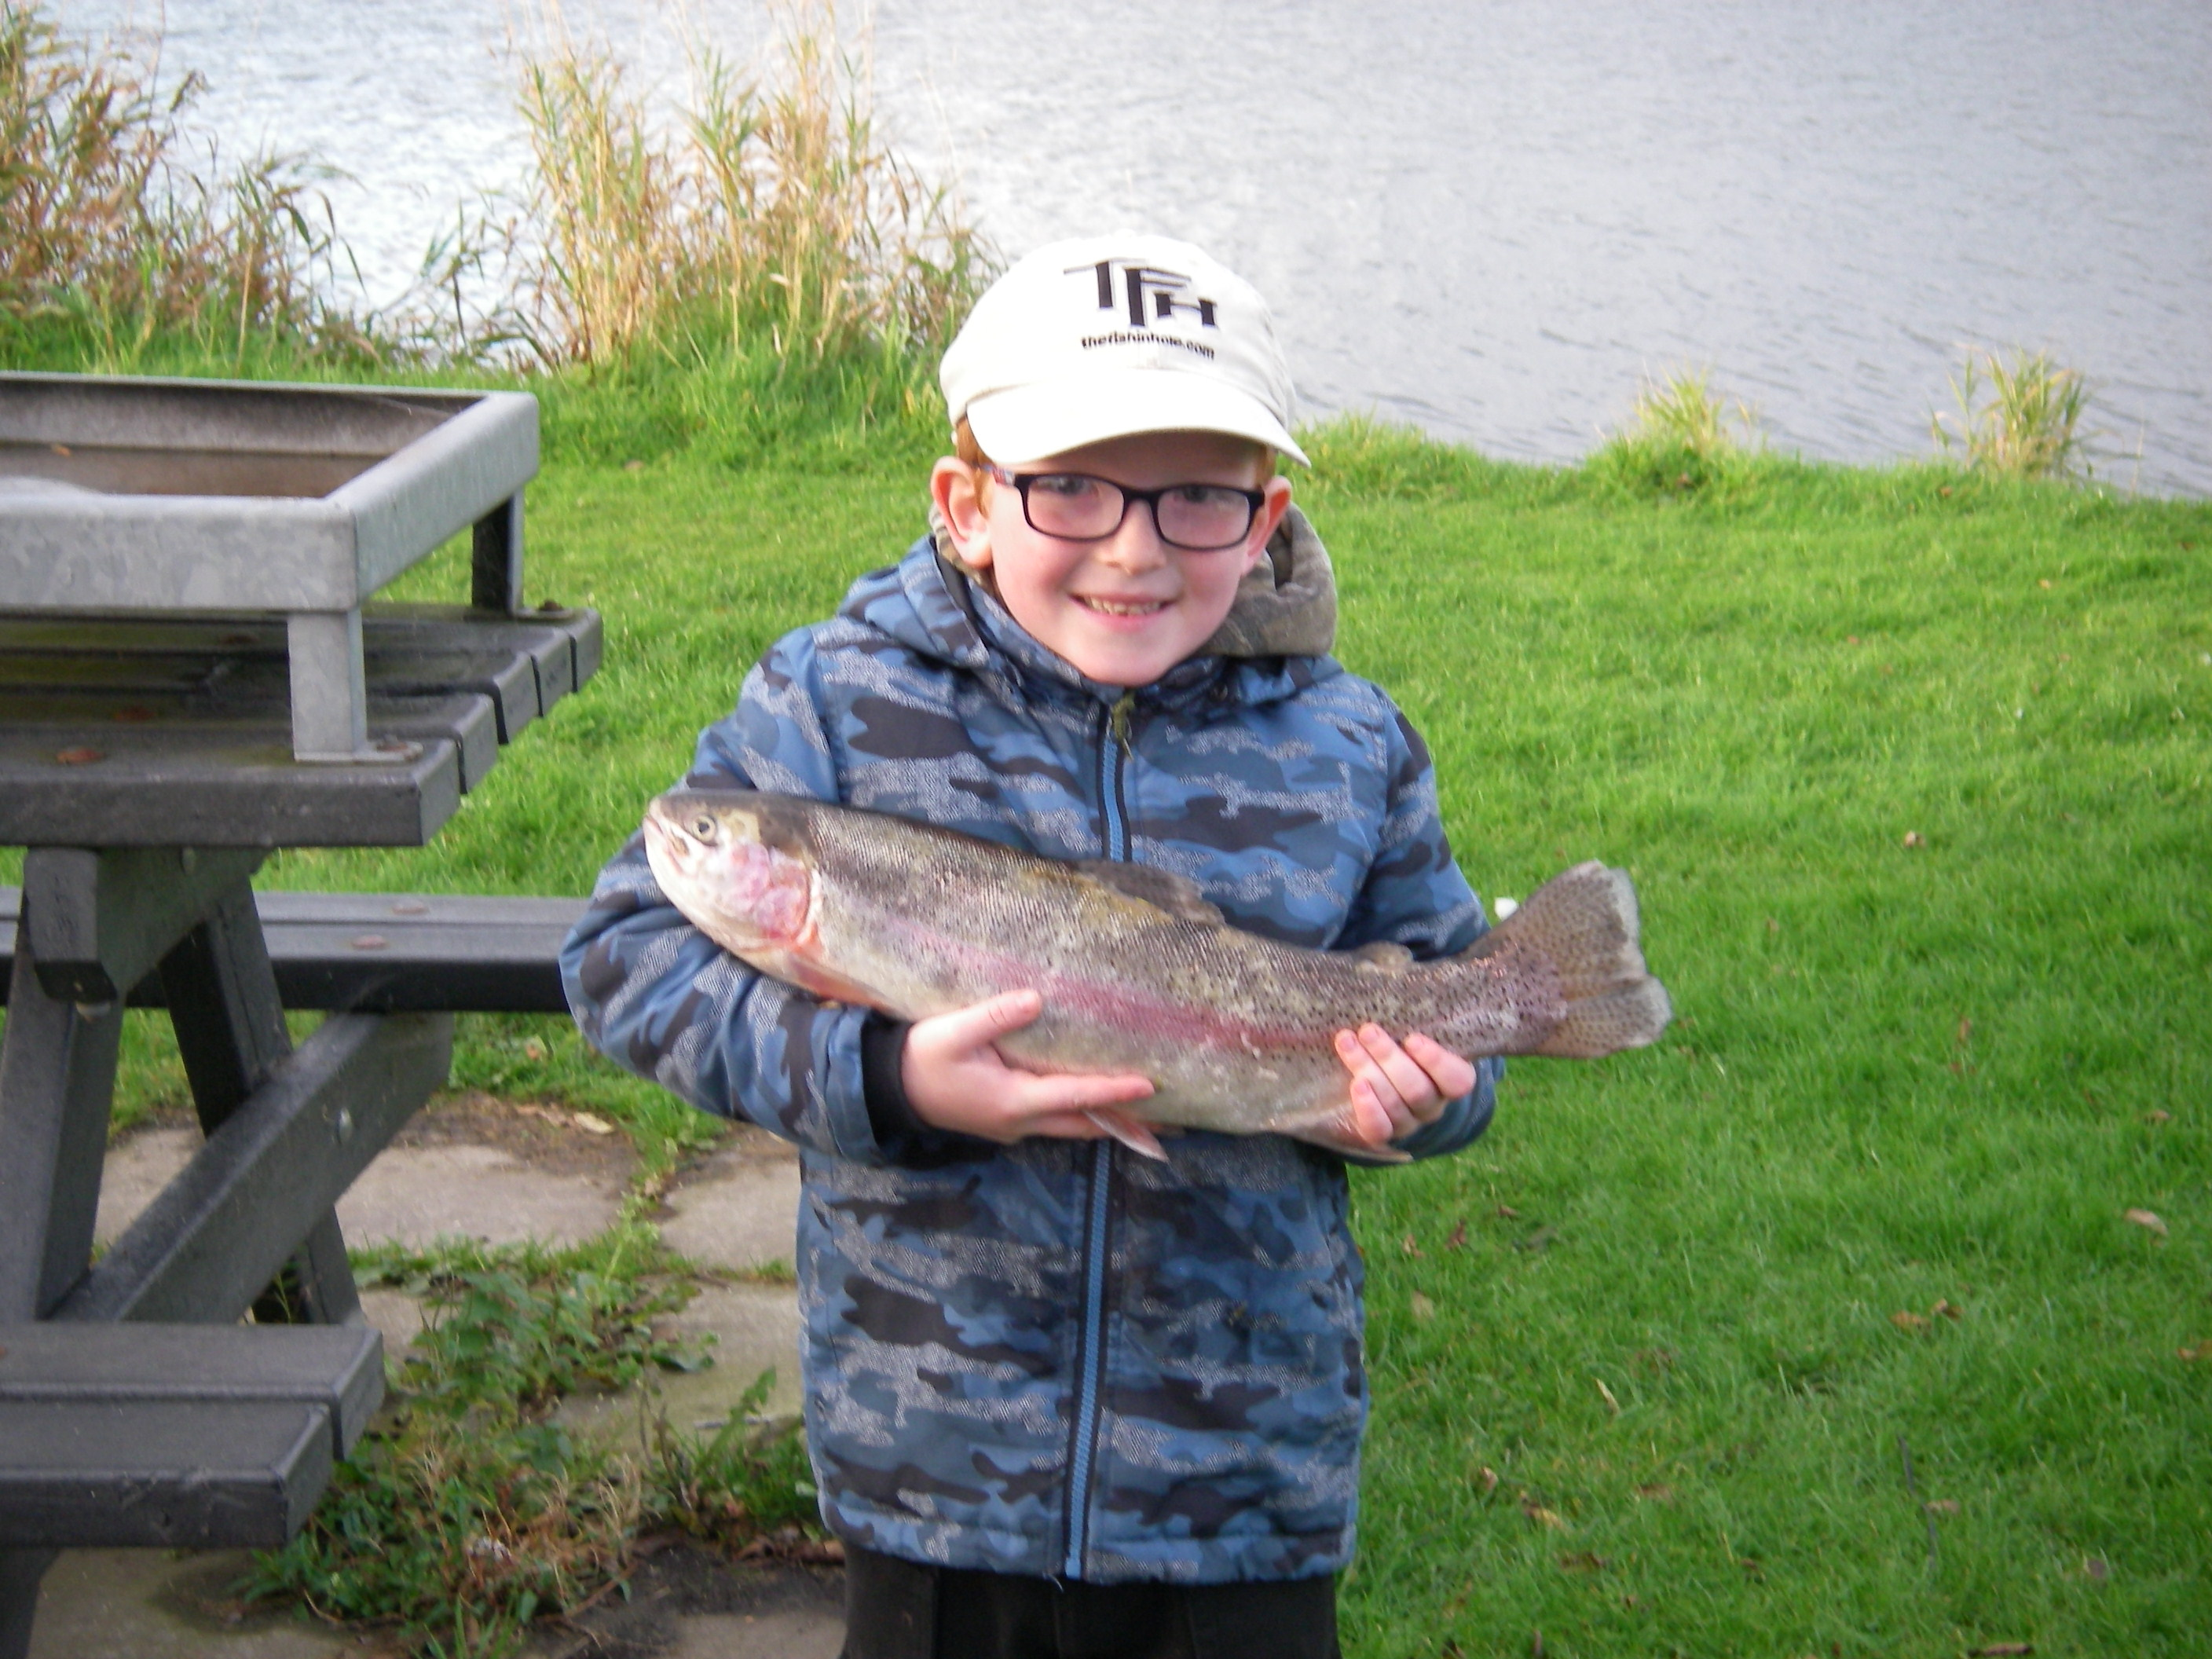 BAC Juvenile Angler with Rainbow Trout 3lbs 7ozs caught at the Corbet Lough on 22 October 2016